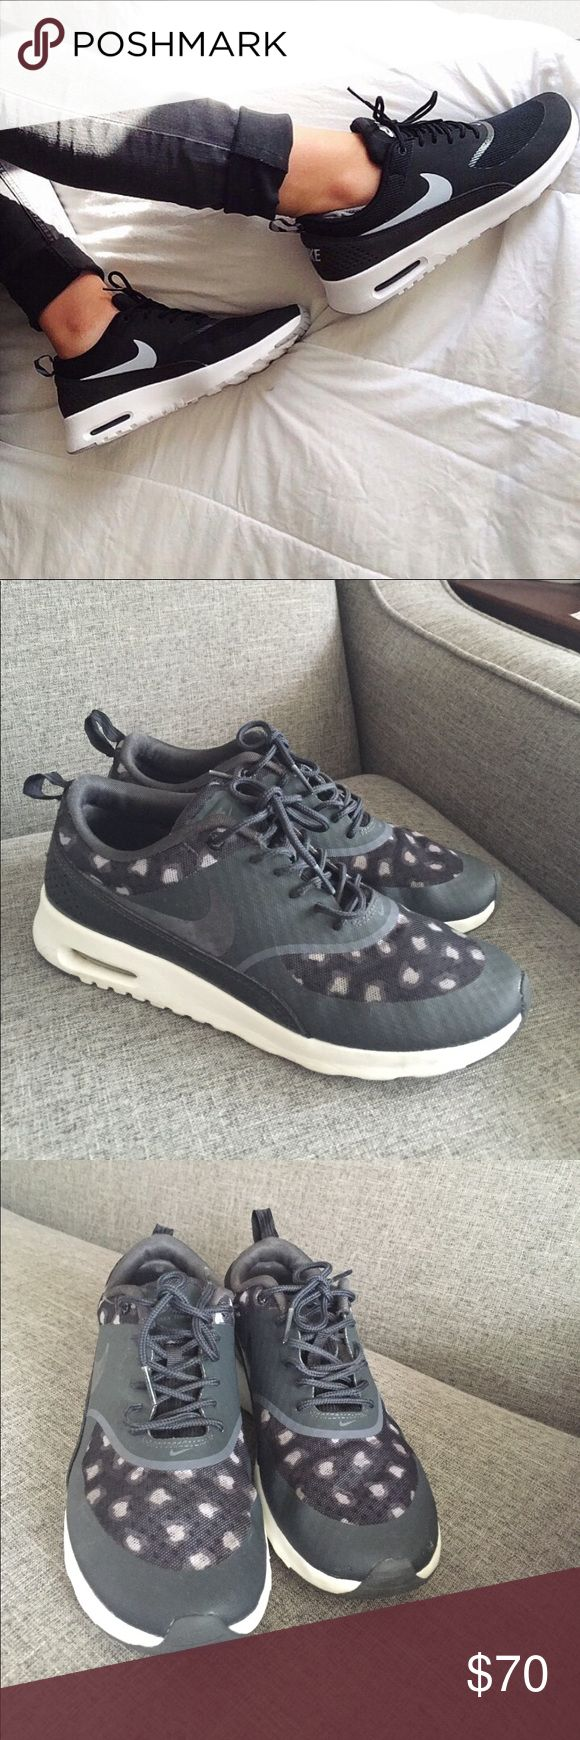 Nike💥Air Max Thea💥cheetah print🐯 Nike's Air Max Thea running shoe in Black/Dark Grey/Anthracite is the epitome of sleek, with strategically placed cheetah print and a black strap of leather , size 9, very good condition 🐯🐯🐯 Nike Shoes Athletic Shoes